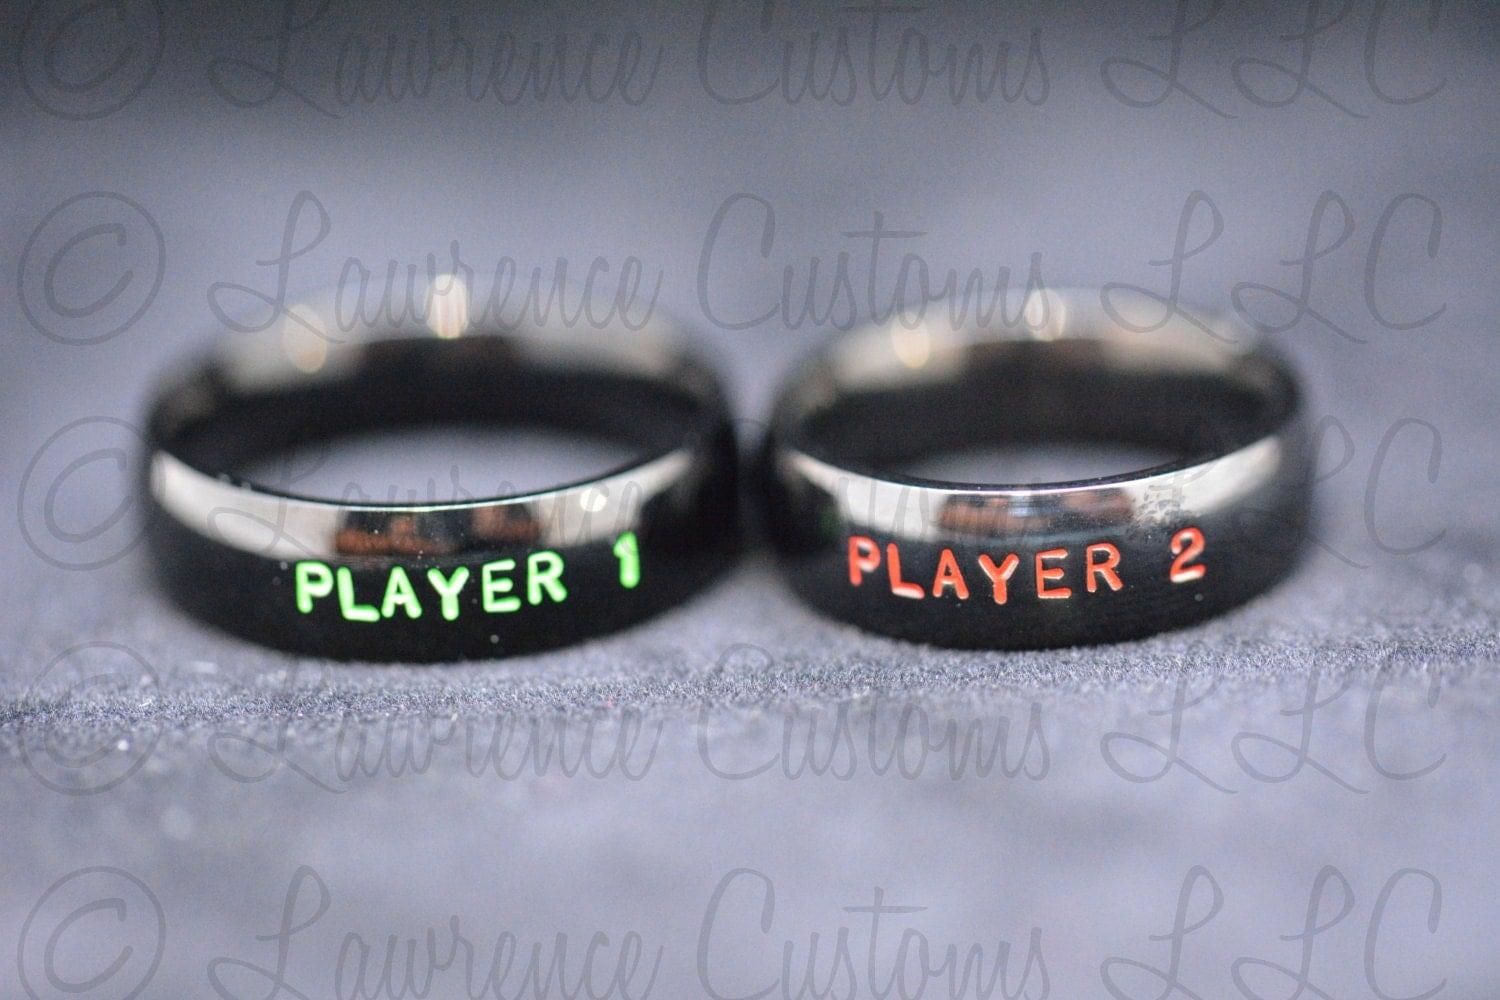 player gamer wedding rings Player 1 Player 2 Couples Ring set Black IP Plated Stainless Steel Ring set Friendship Rings Classic Gamer Rings Hand Stamped geekery